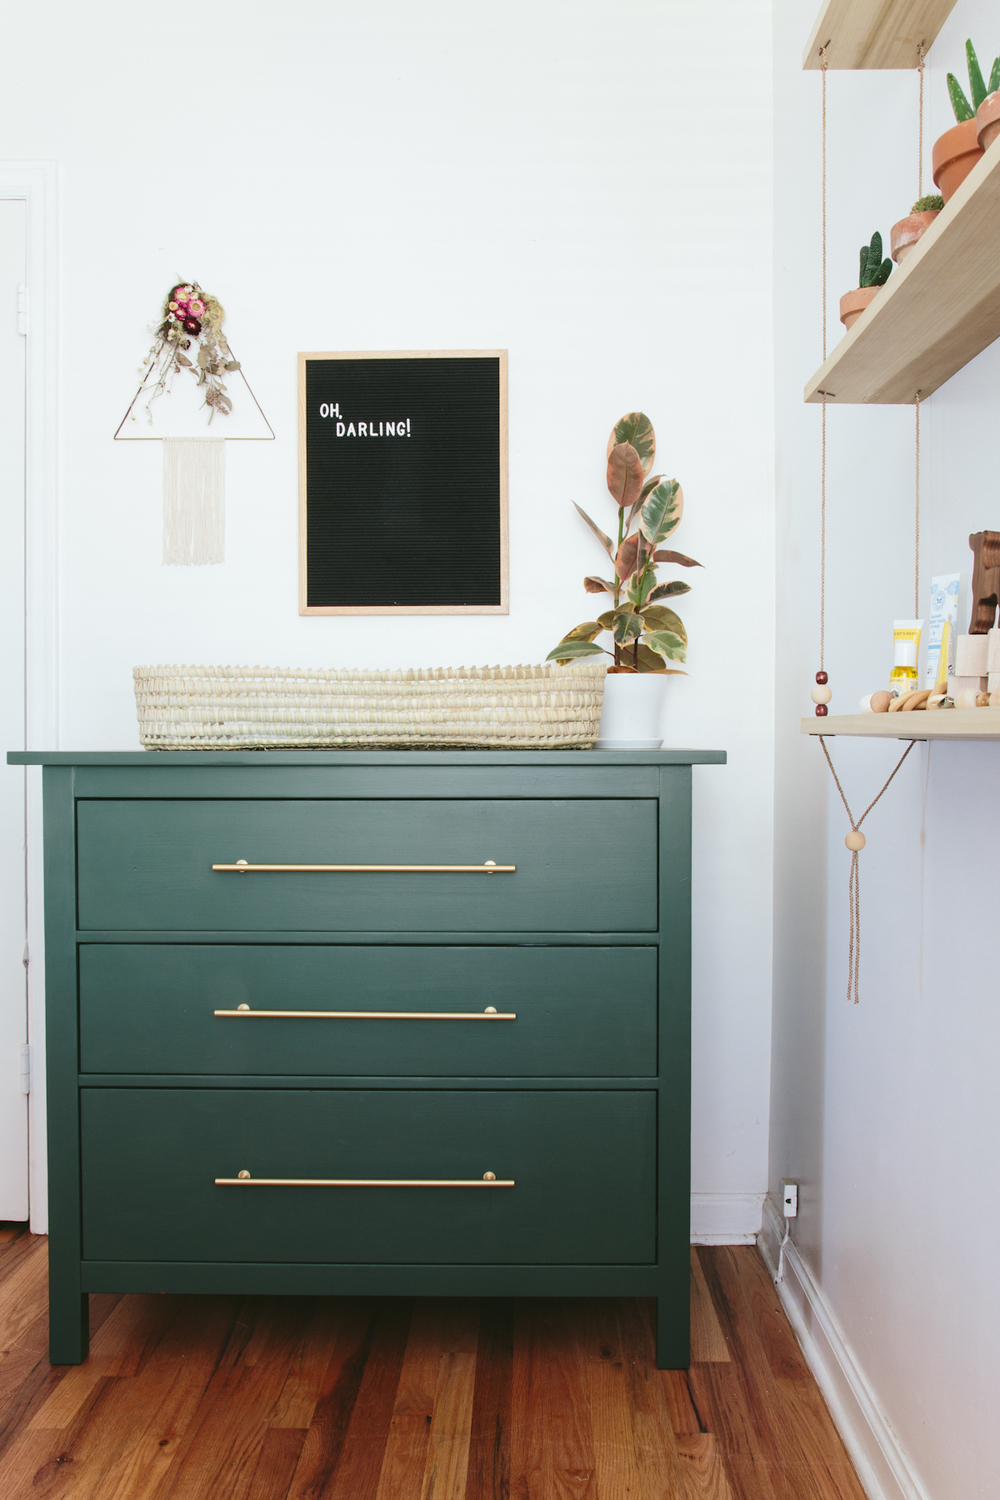 Ikea Rast hacks, 50 of the best Ikea Rast hacks, green nightstand, green dresser, change table, Ikea rast makeover, nightstand, bedside table, Ikea hacks